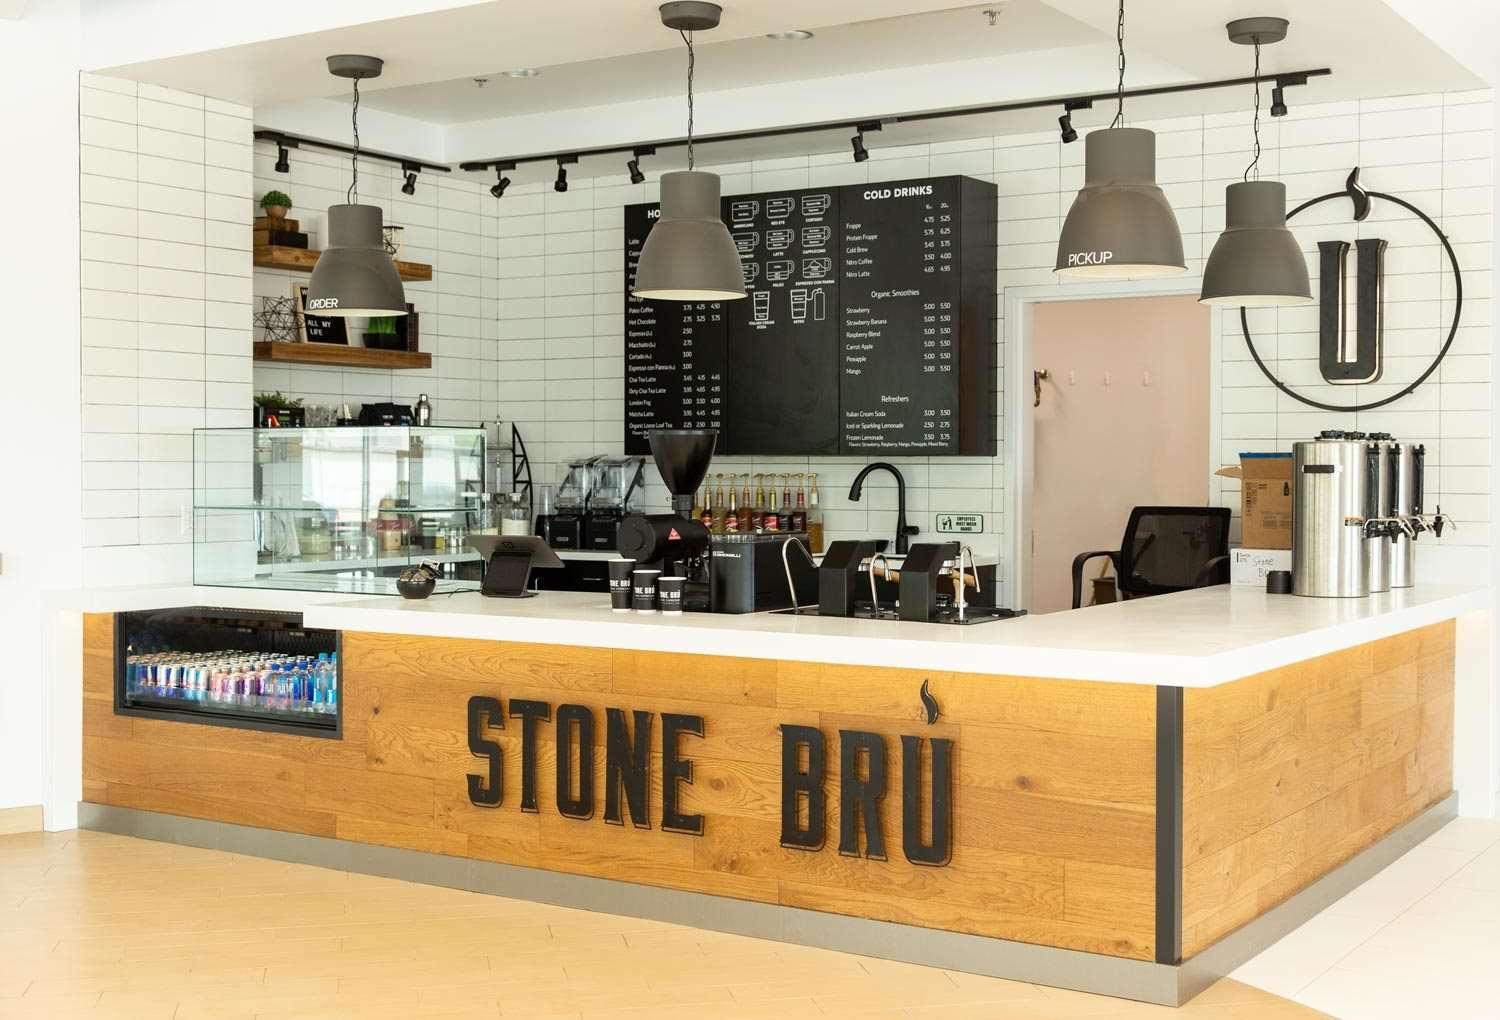 Vern Eide Honda - Stone Bru Coffee Sioux City IA